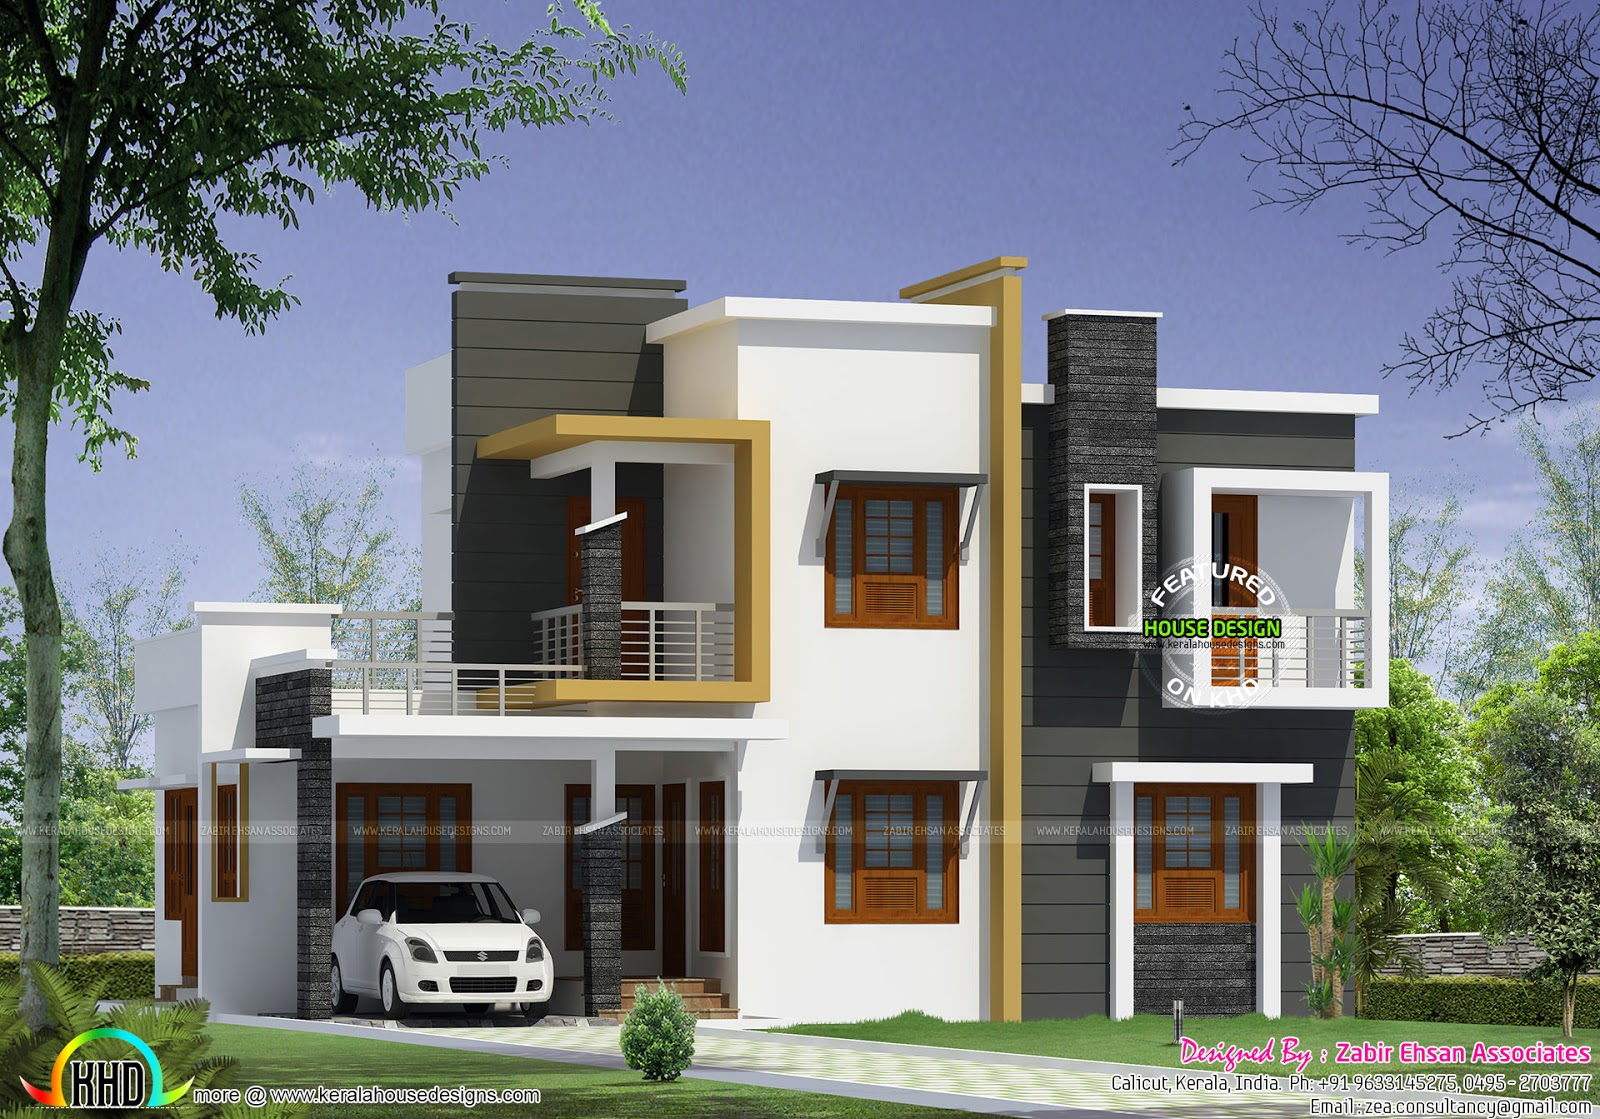 box type modern house plan - House Design Plan